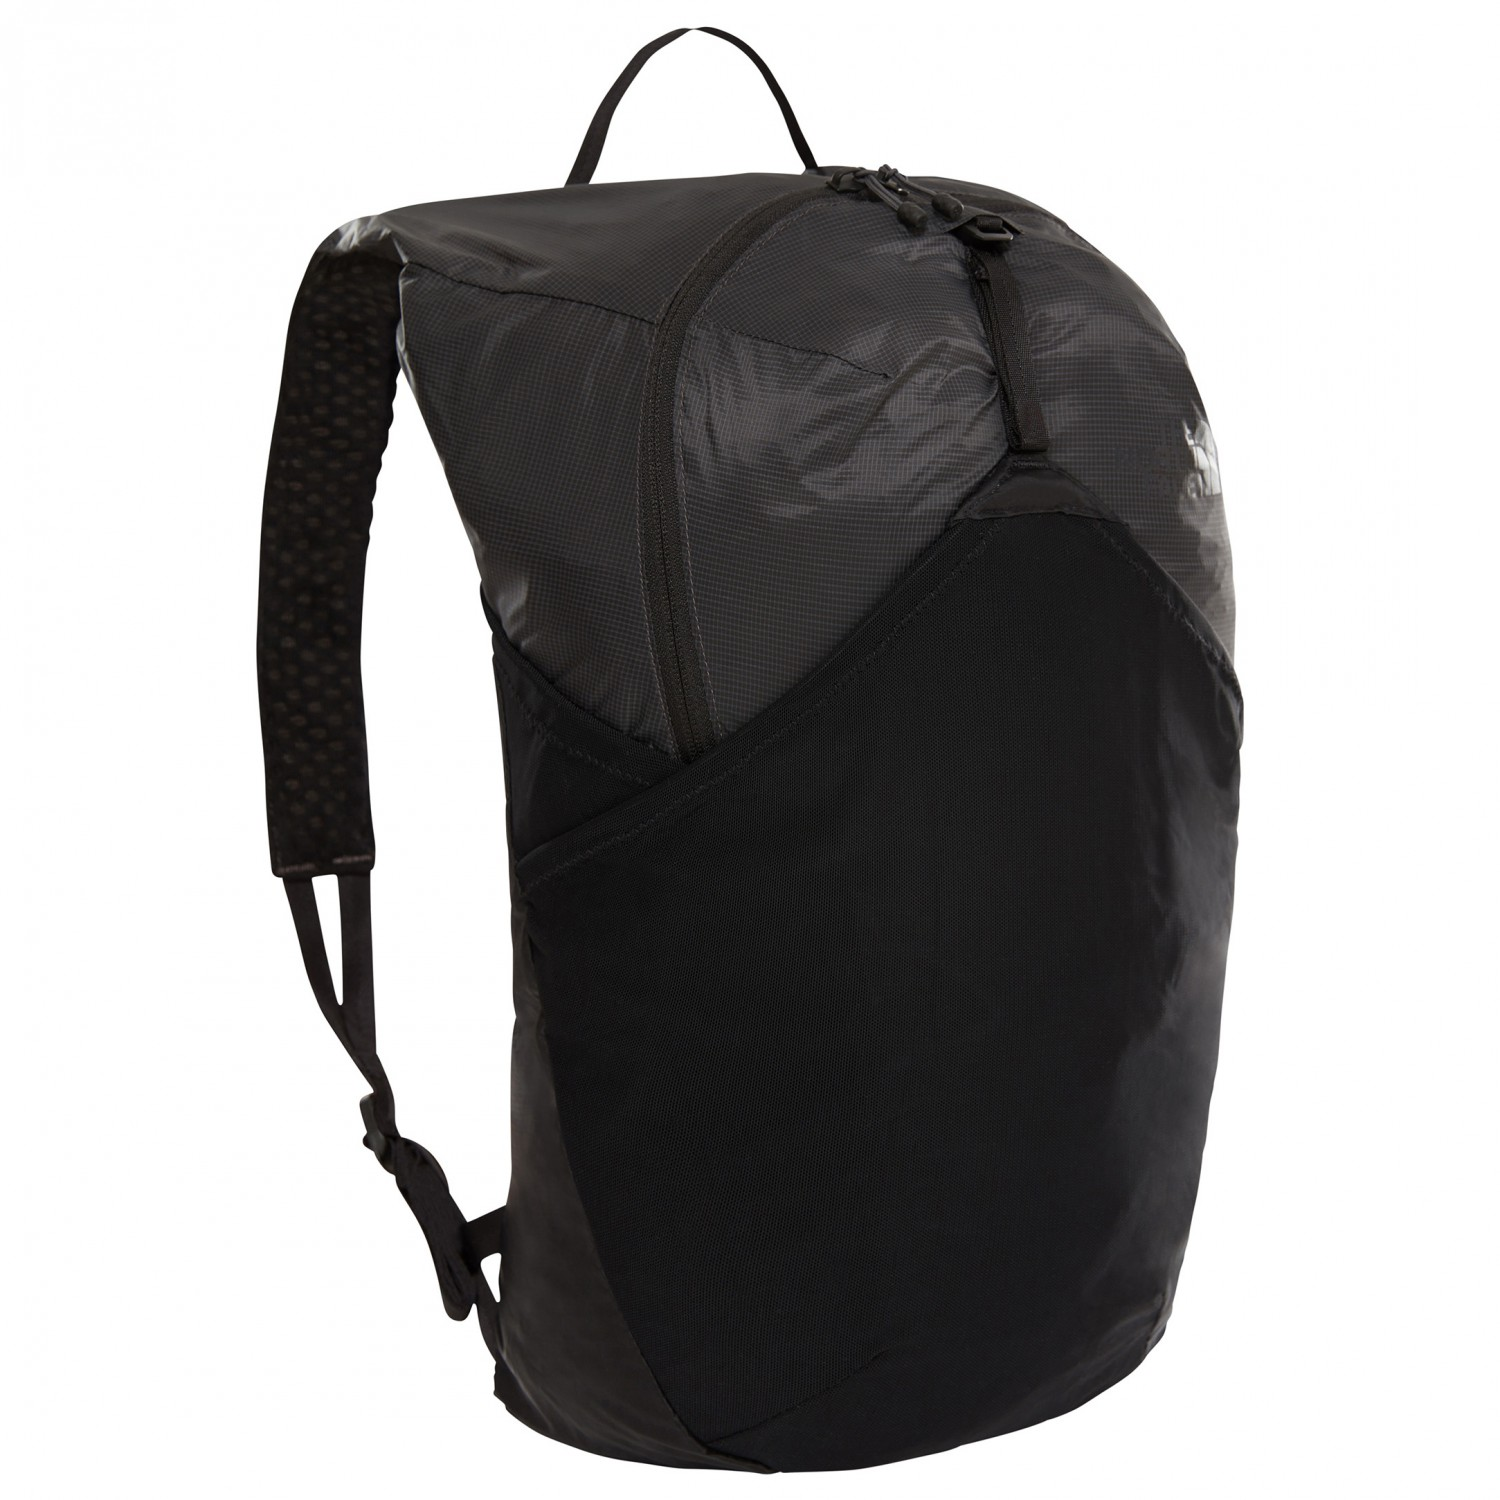 03e911c7c4 The North Face Flyweight Pack - Daypack | Buy online | Alpinetrek.co.uk